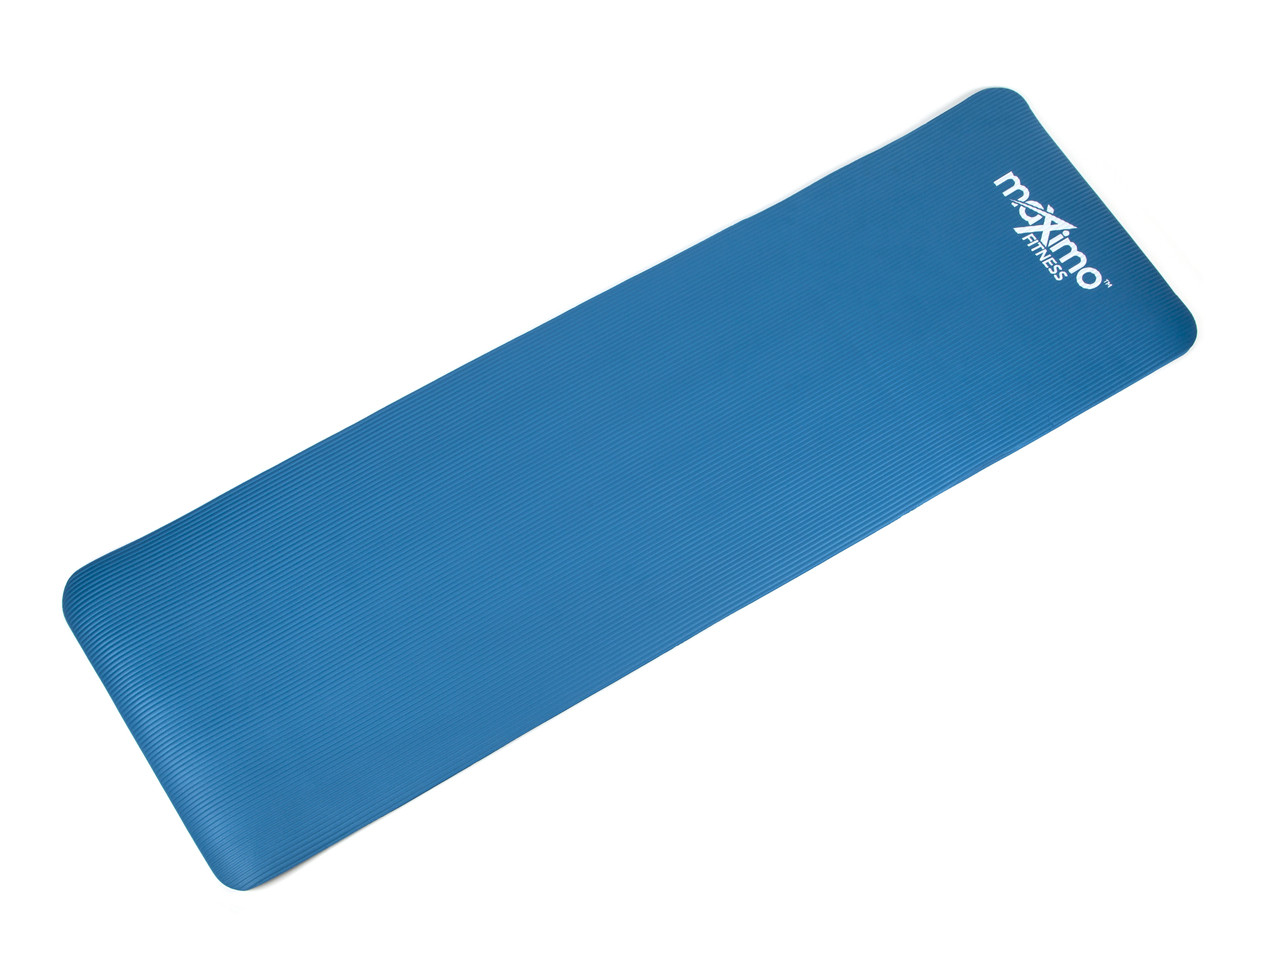 Pilates Mat Amazon Pvc Yoga Mat 6mm Thickness Pad Non